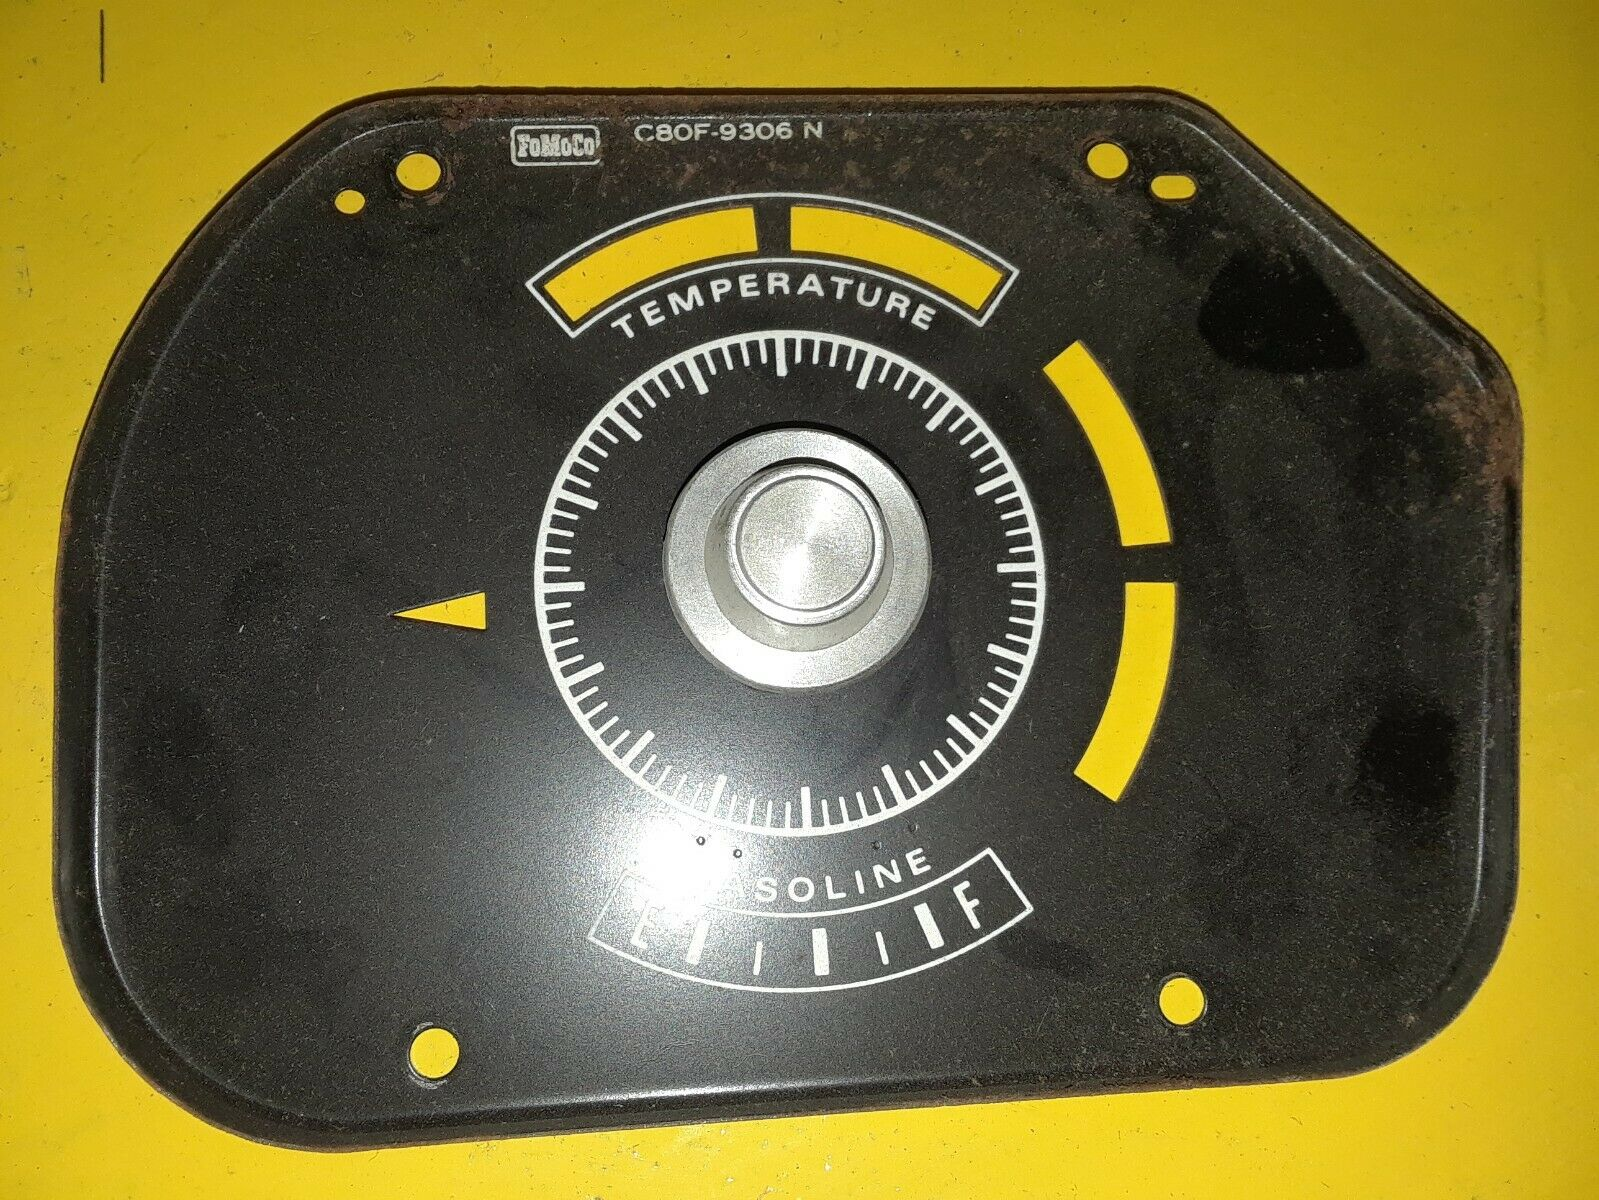 Ford 68 FAIRLANE Torino FUEL GAUGE C80Z-9305-B / C80F-9306-N - PARTS Does not apply